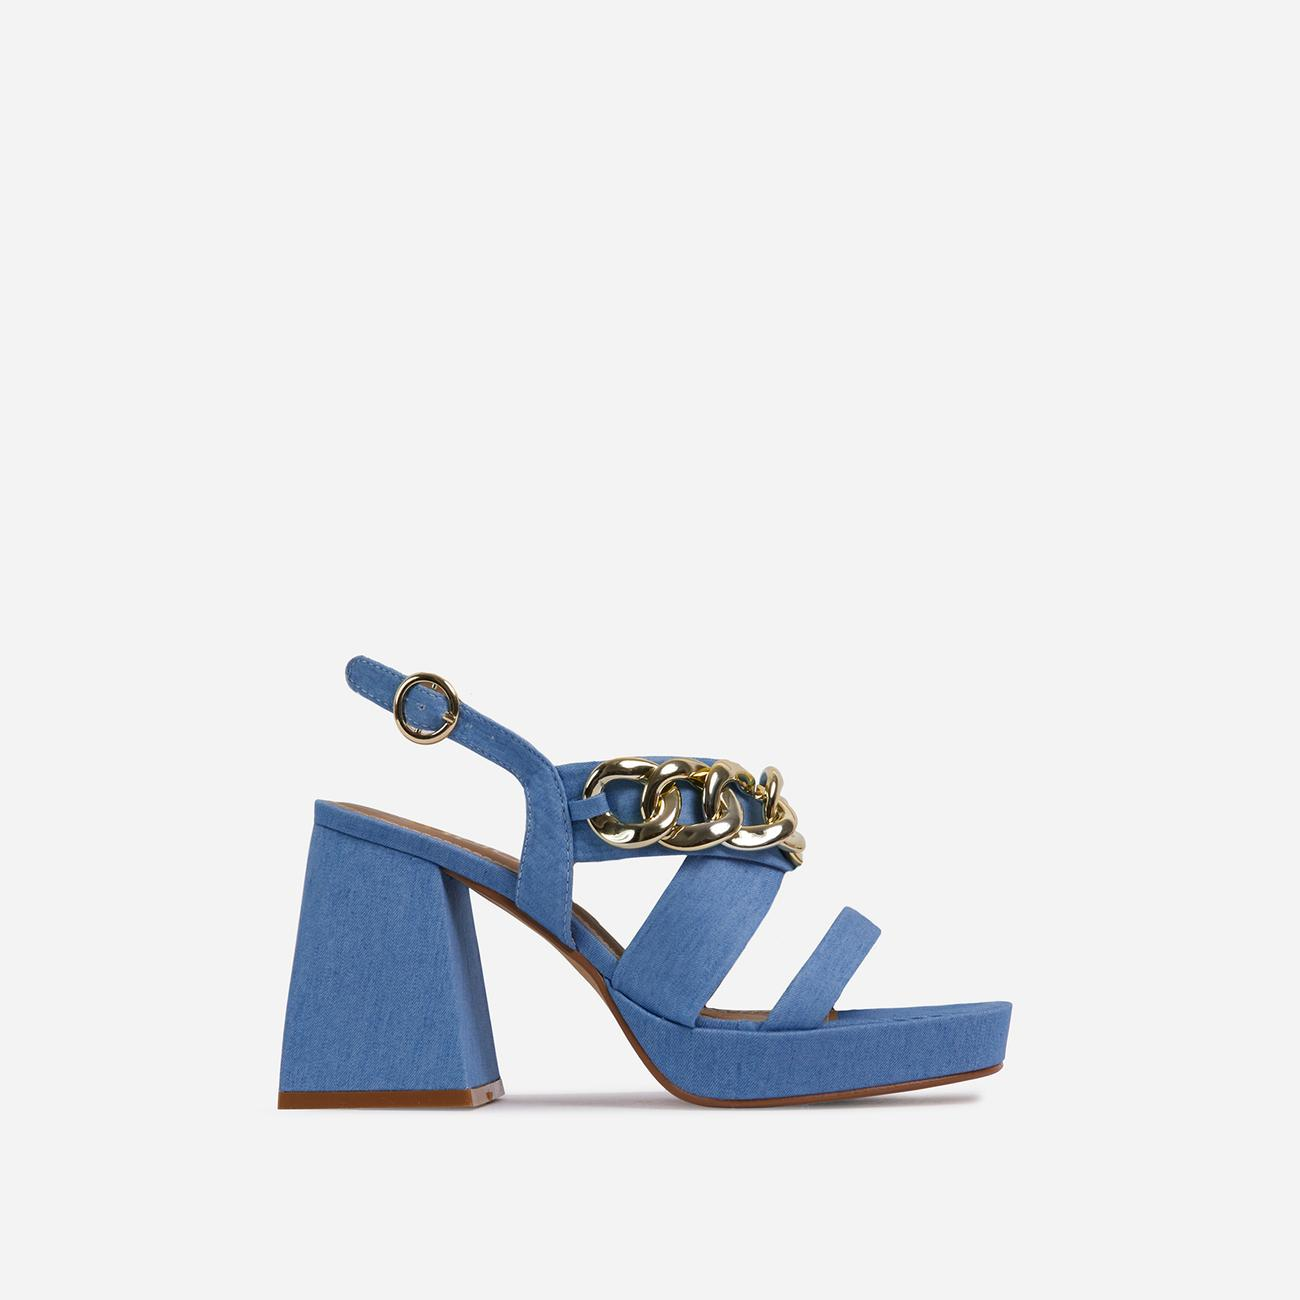 Recharge Wide Fit Chain Detail Platform Flared Block Heel In Blue Denim Image 1